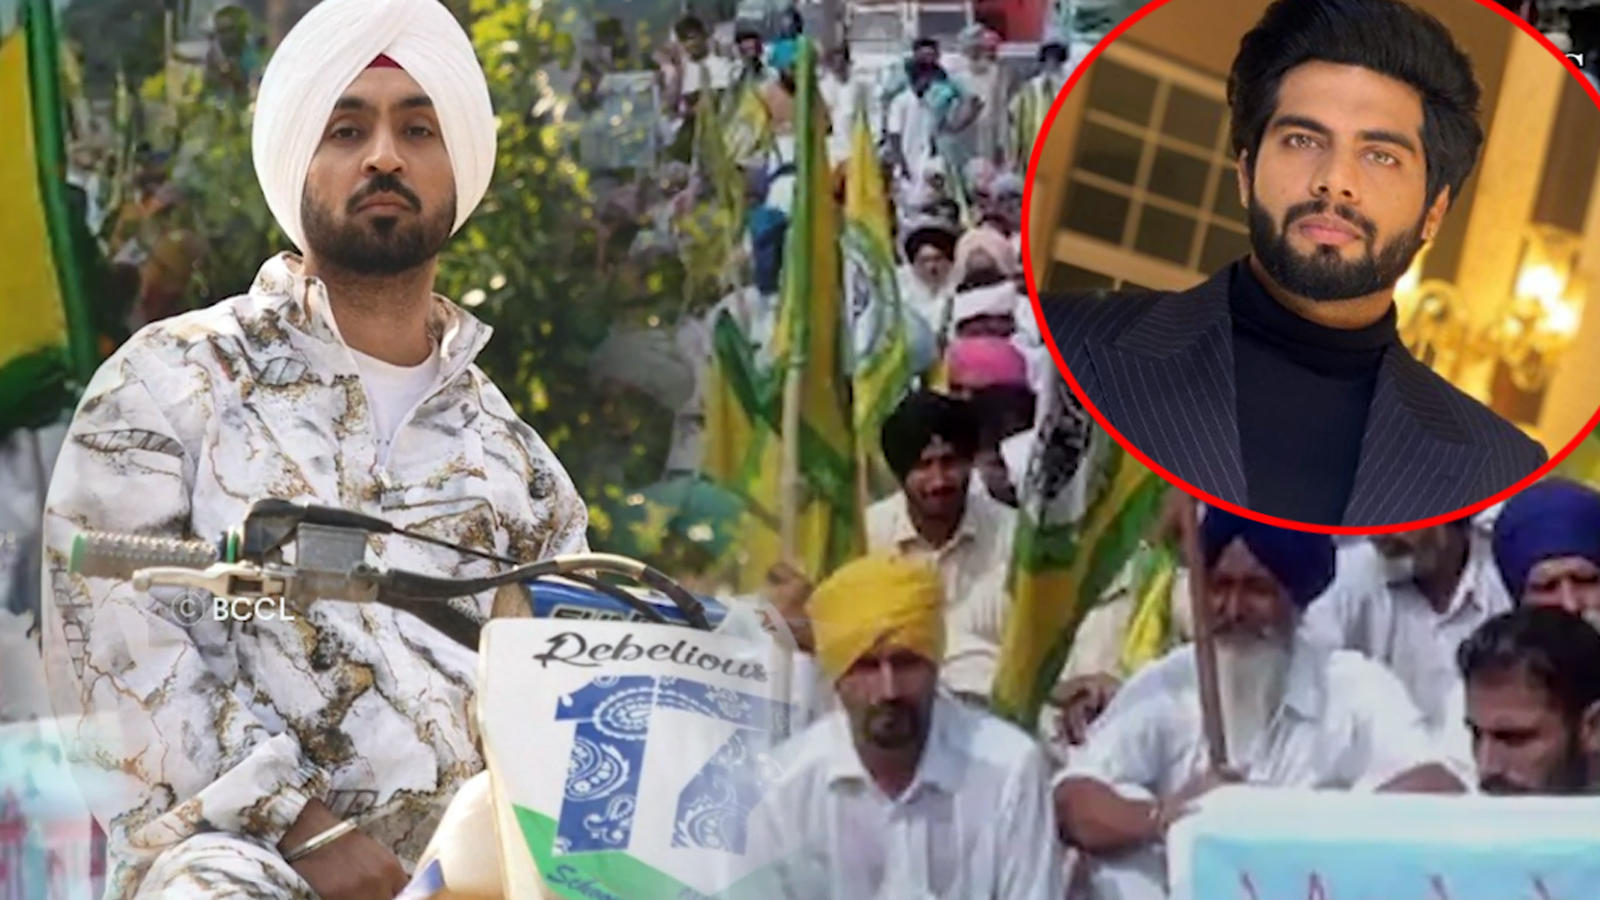 Diljit Dosanjh quietly donated Rs 1 crore for winter-wears to farmers  protesting against new farm laws, reveals Punjabi singer Singga | Hindi  Movie News - Bollywood - Times of India